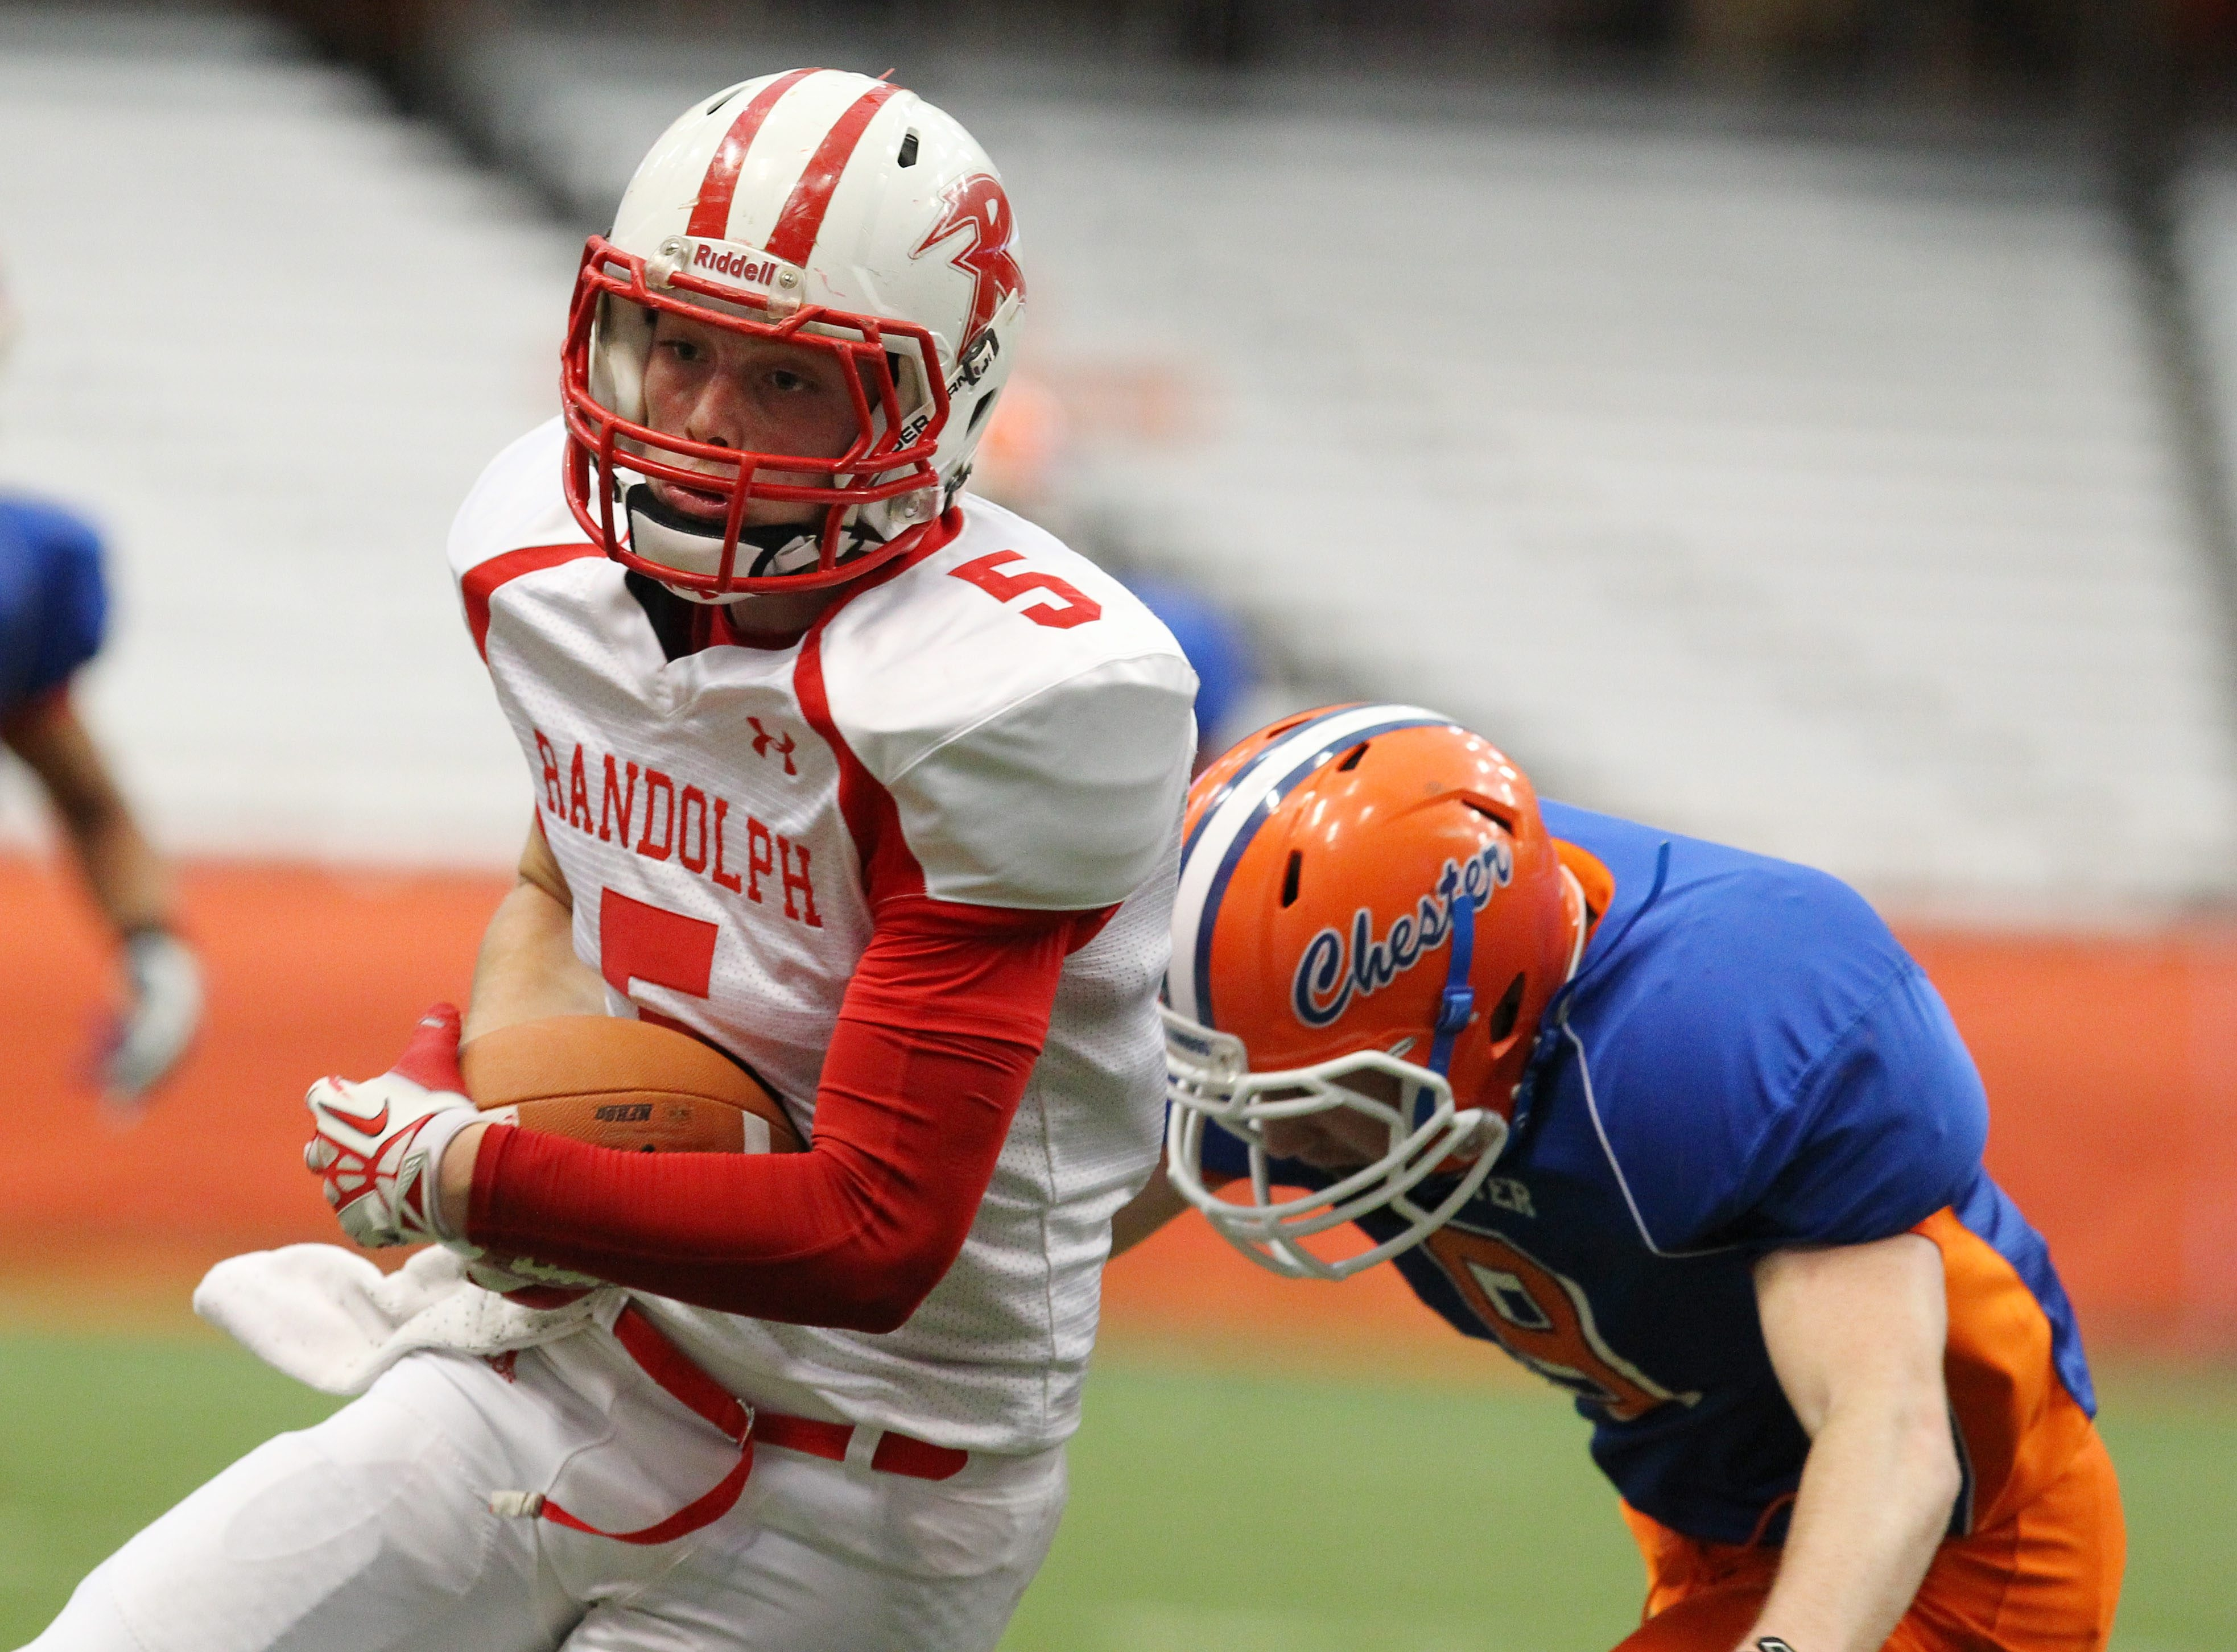 Randolph's Bryce Morrison is one of the top returning players on a team that has won the last two state championships.